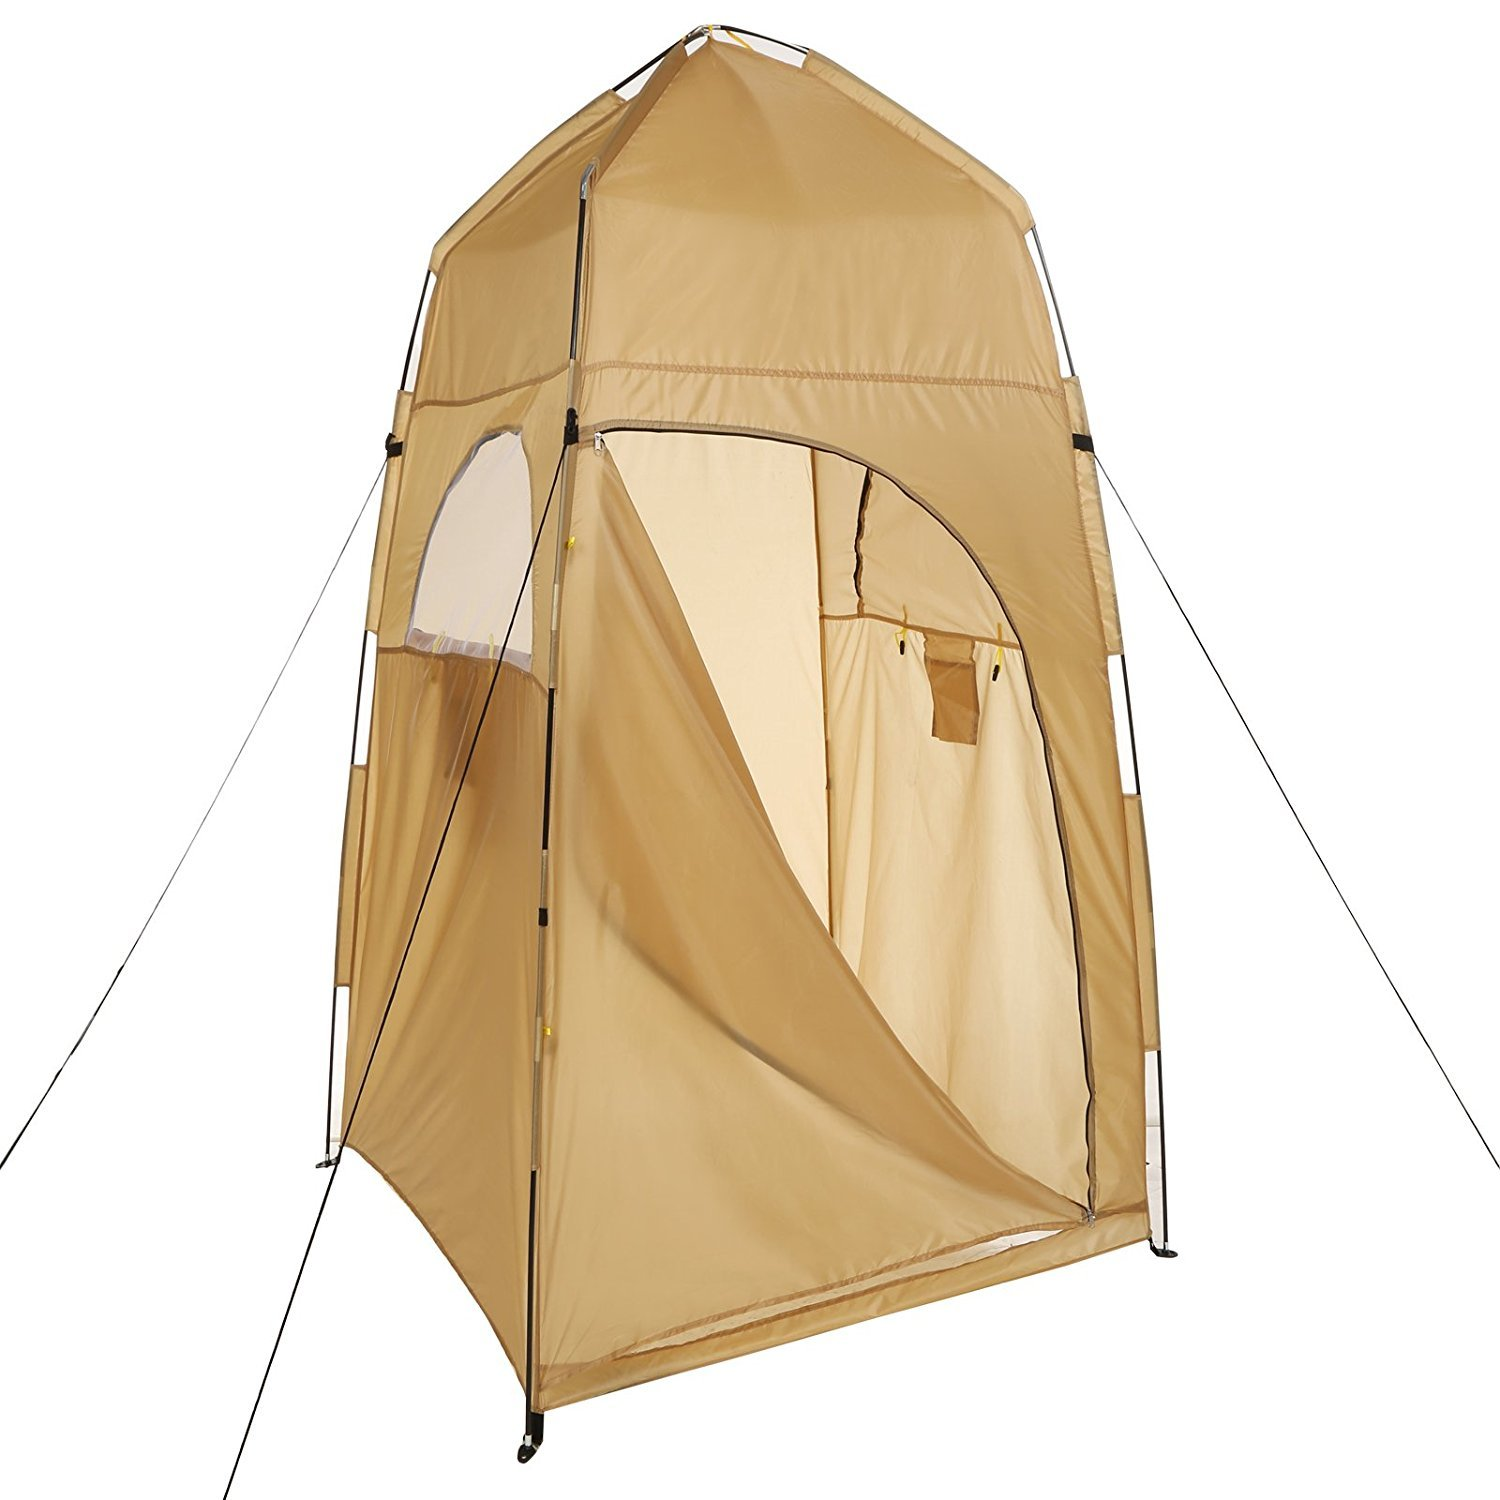 Camping Privacy Shower Tent, Portable Potty Toilet Tent, Outdoor Pop Up Changing Tent with Mesh Window and Carrying Bag